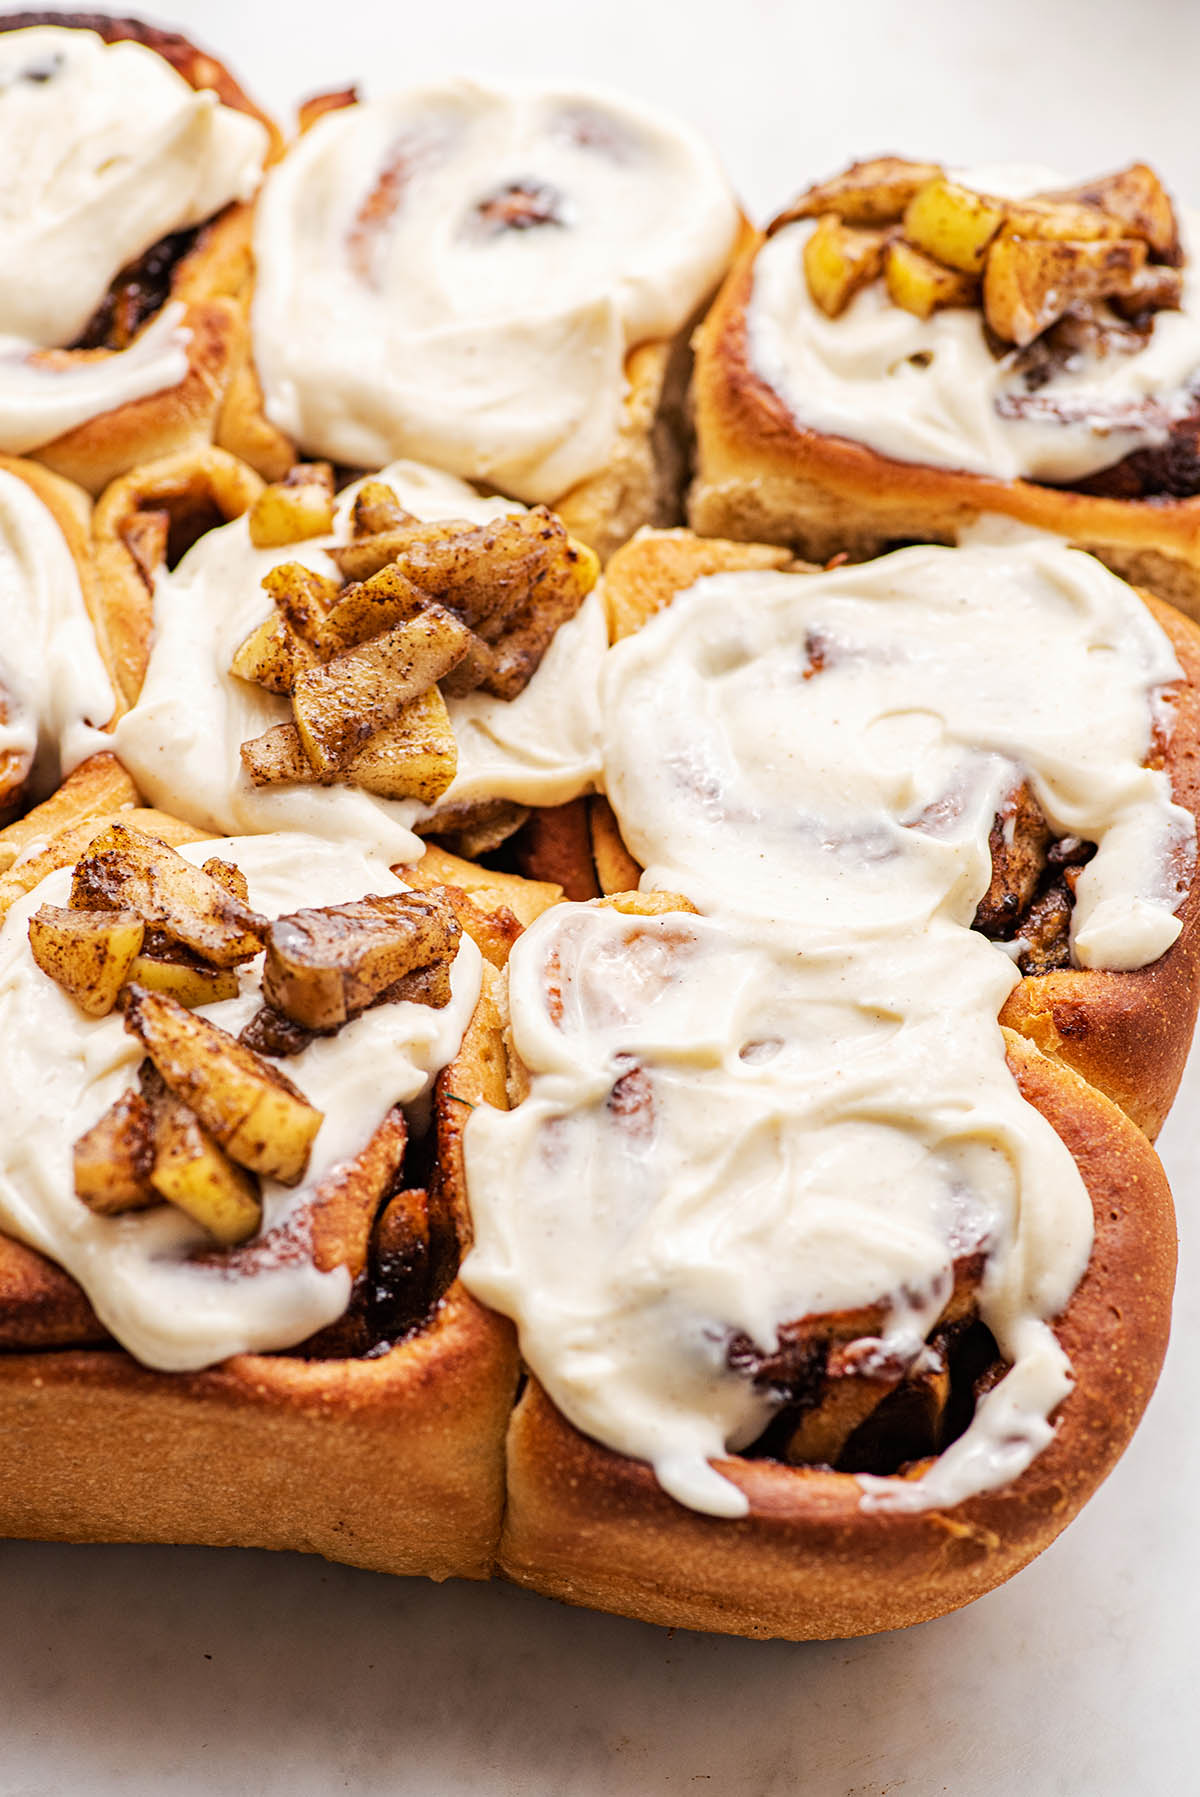 Iced cinnamon rolls topped with cooked apples.